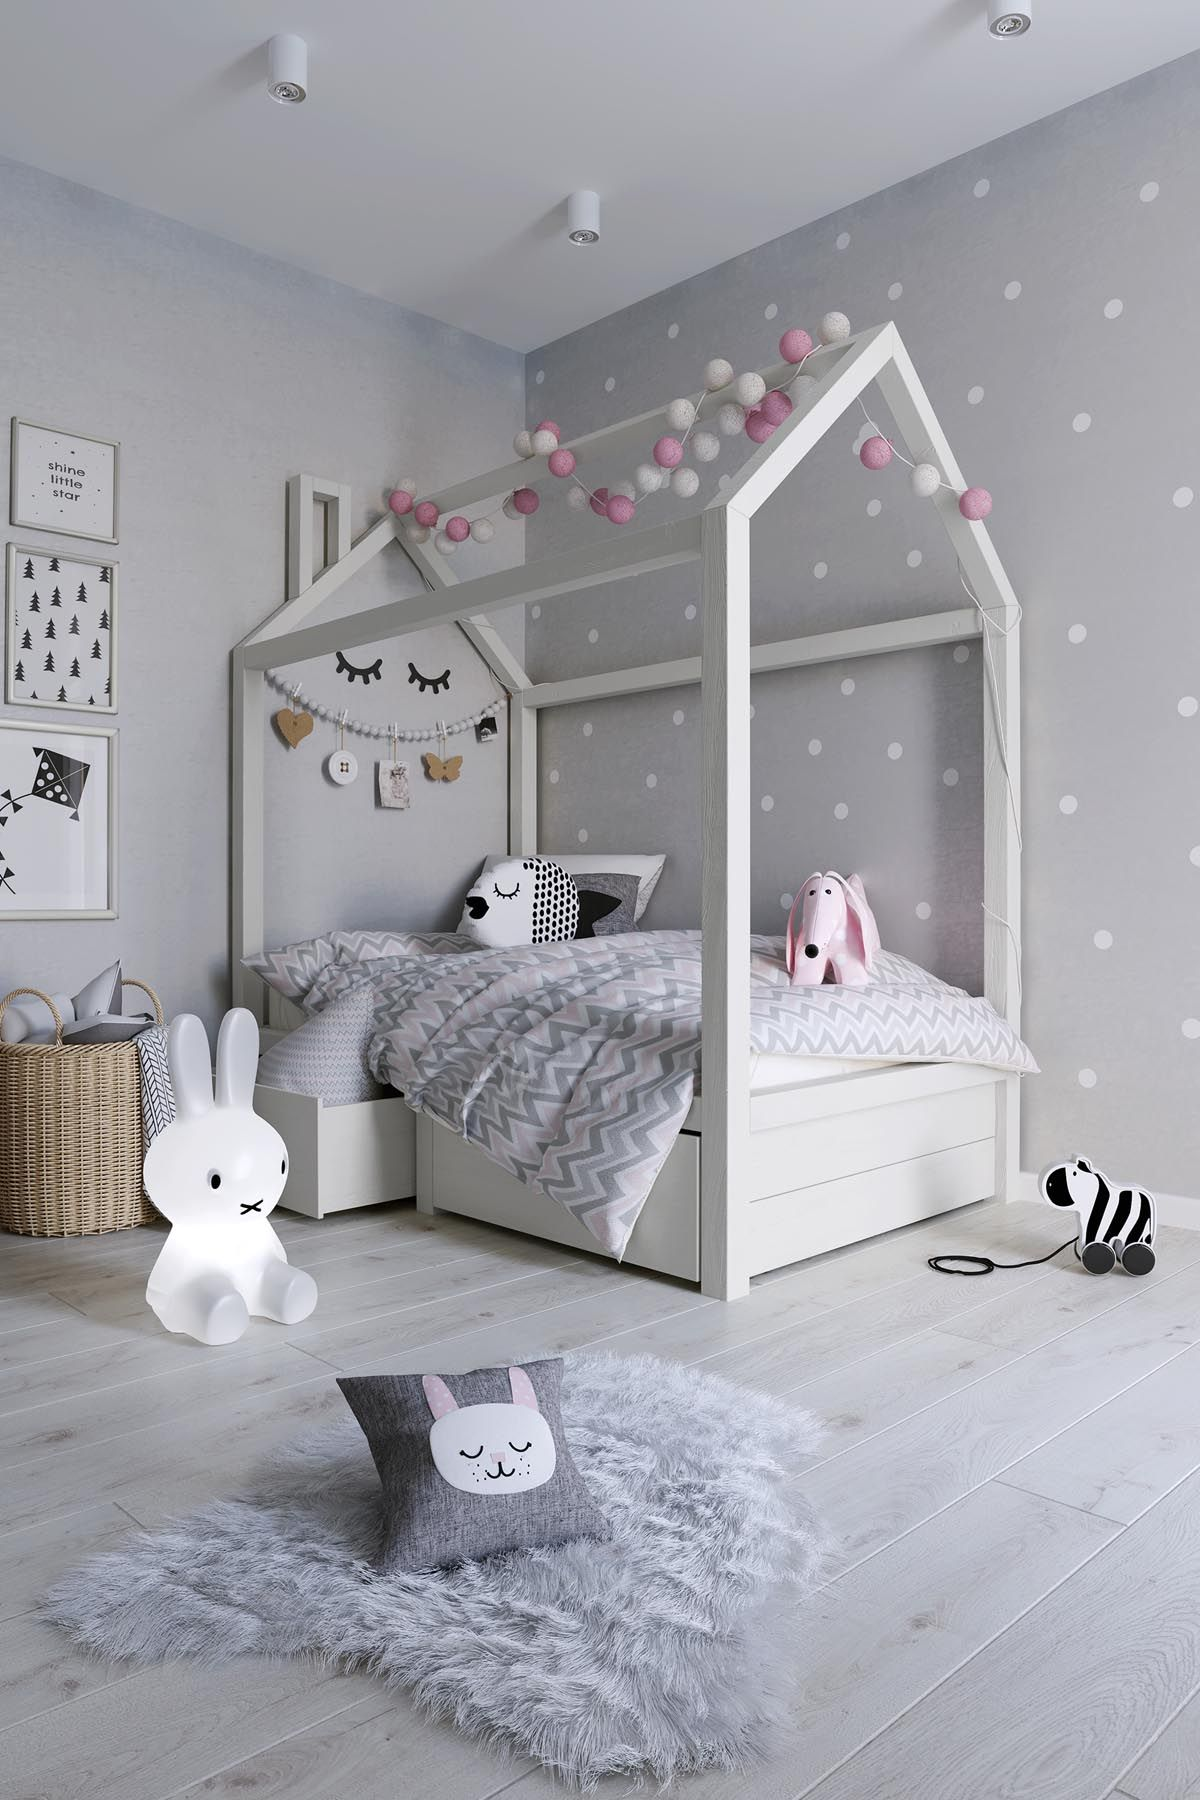 Help Designing A Room: Pin On Kids Room Designs